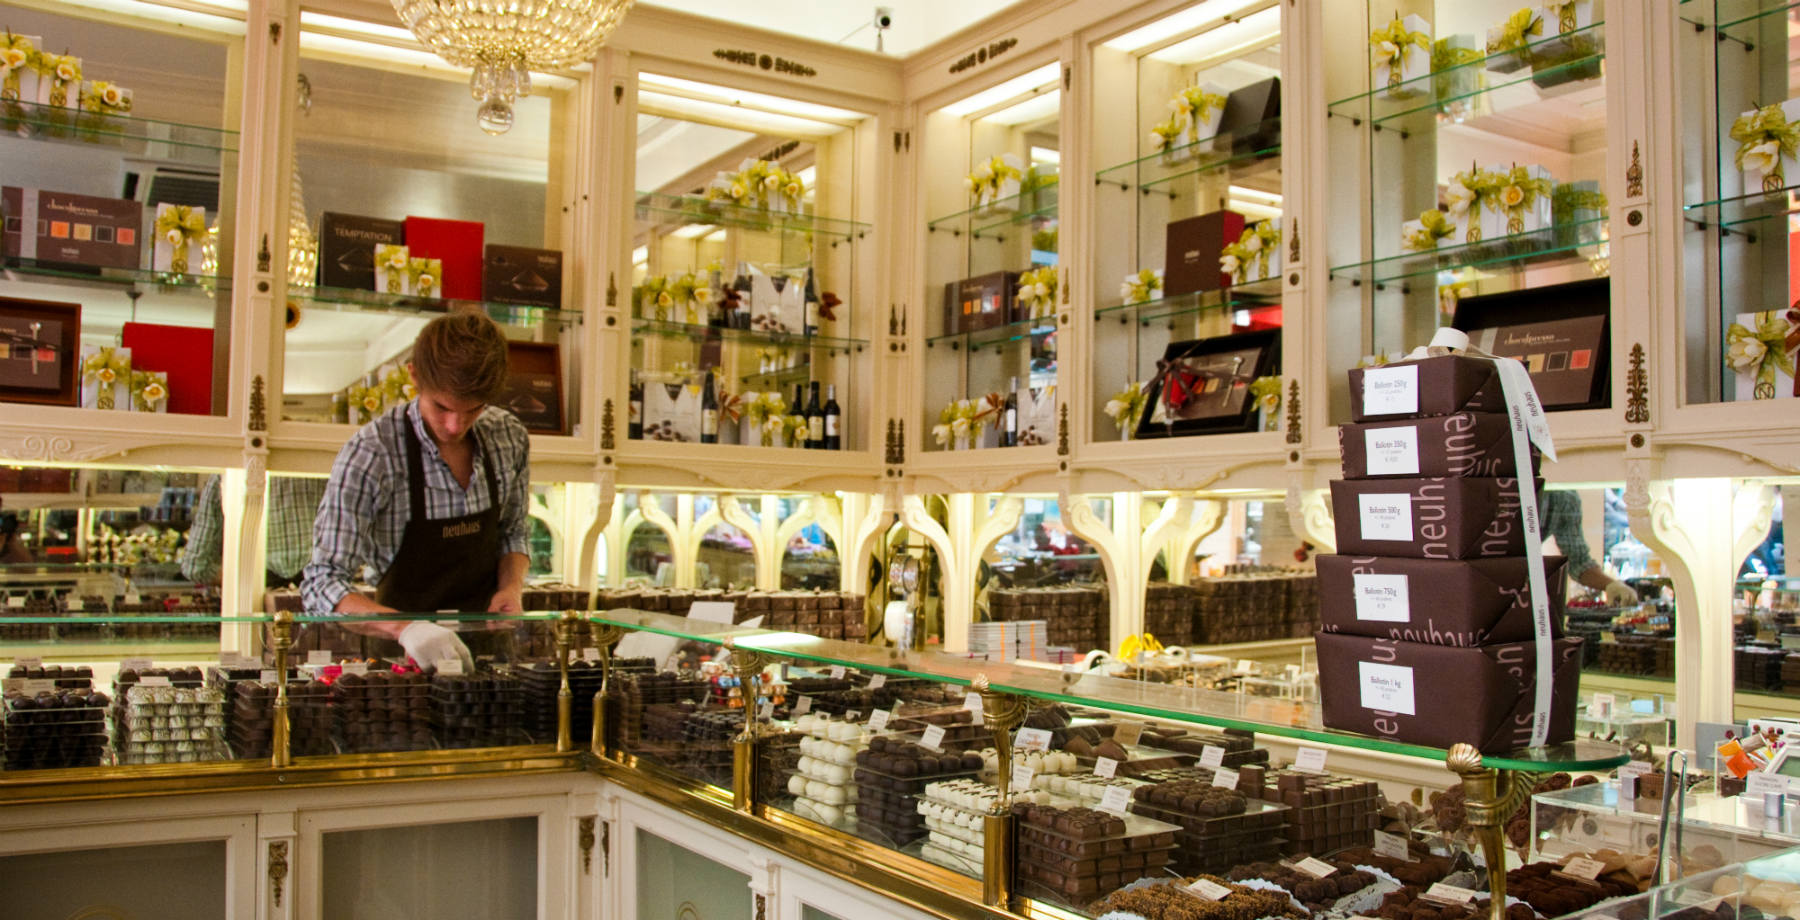 Seller at Neuhaus Chocolate Store Brussels (c) Pieter Heremans